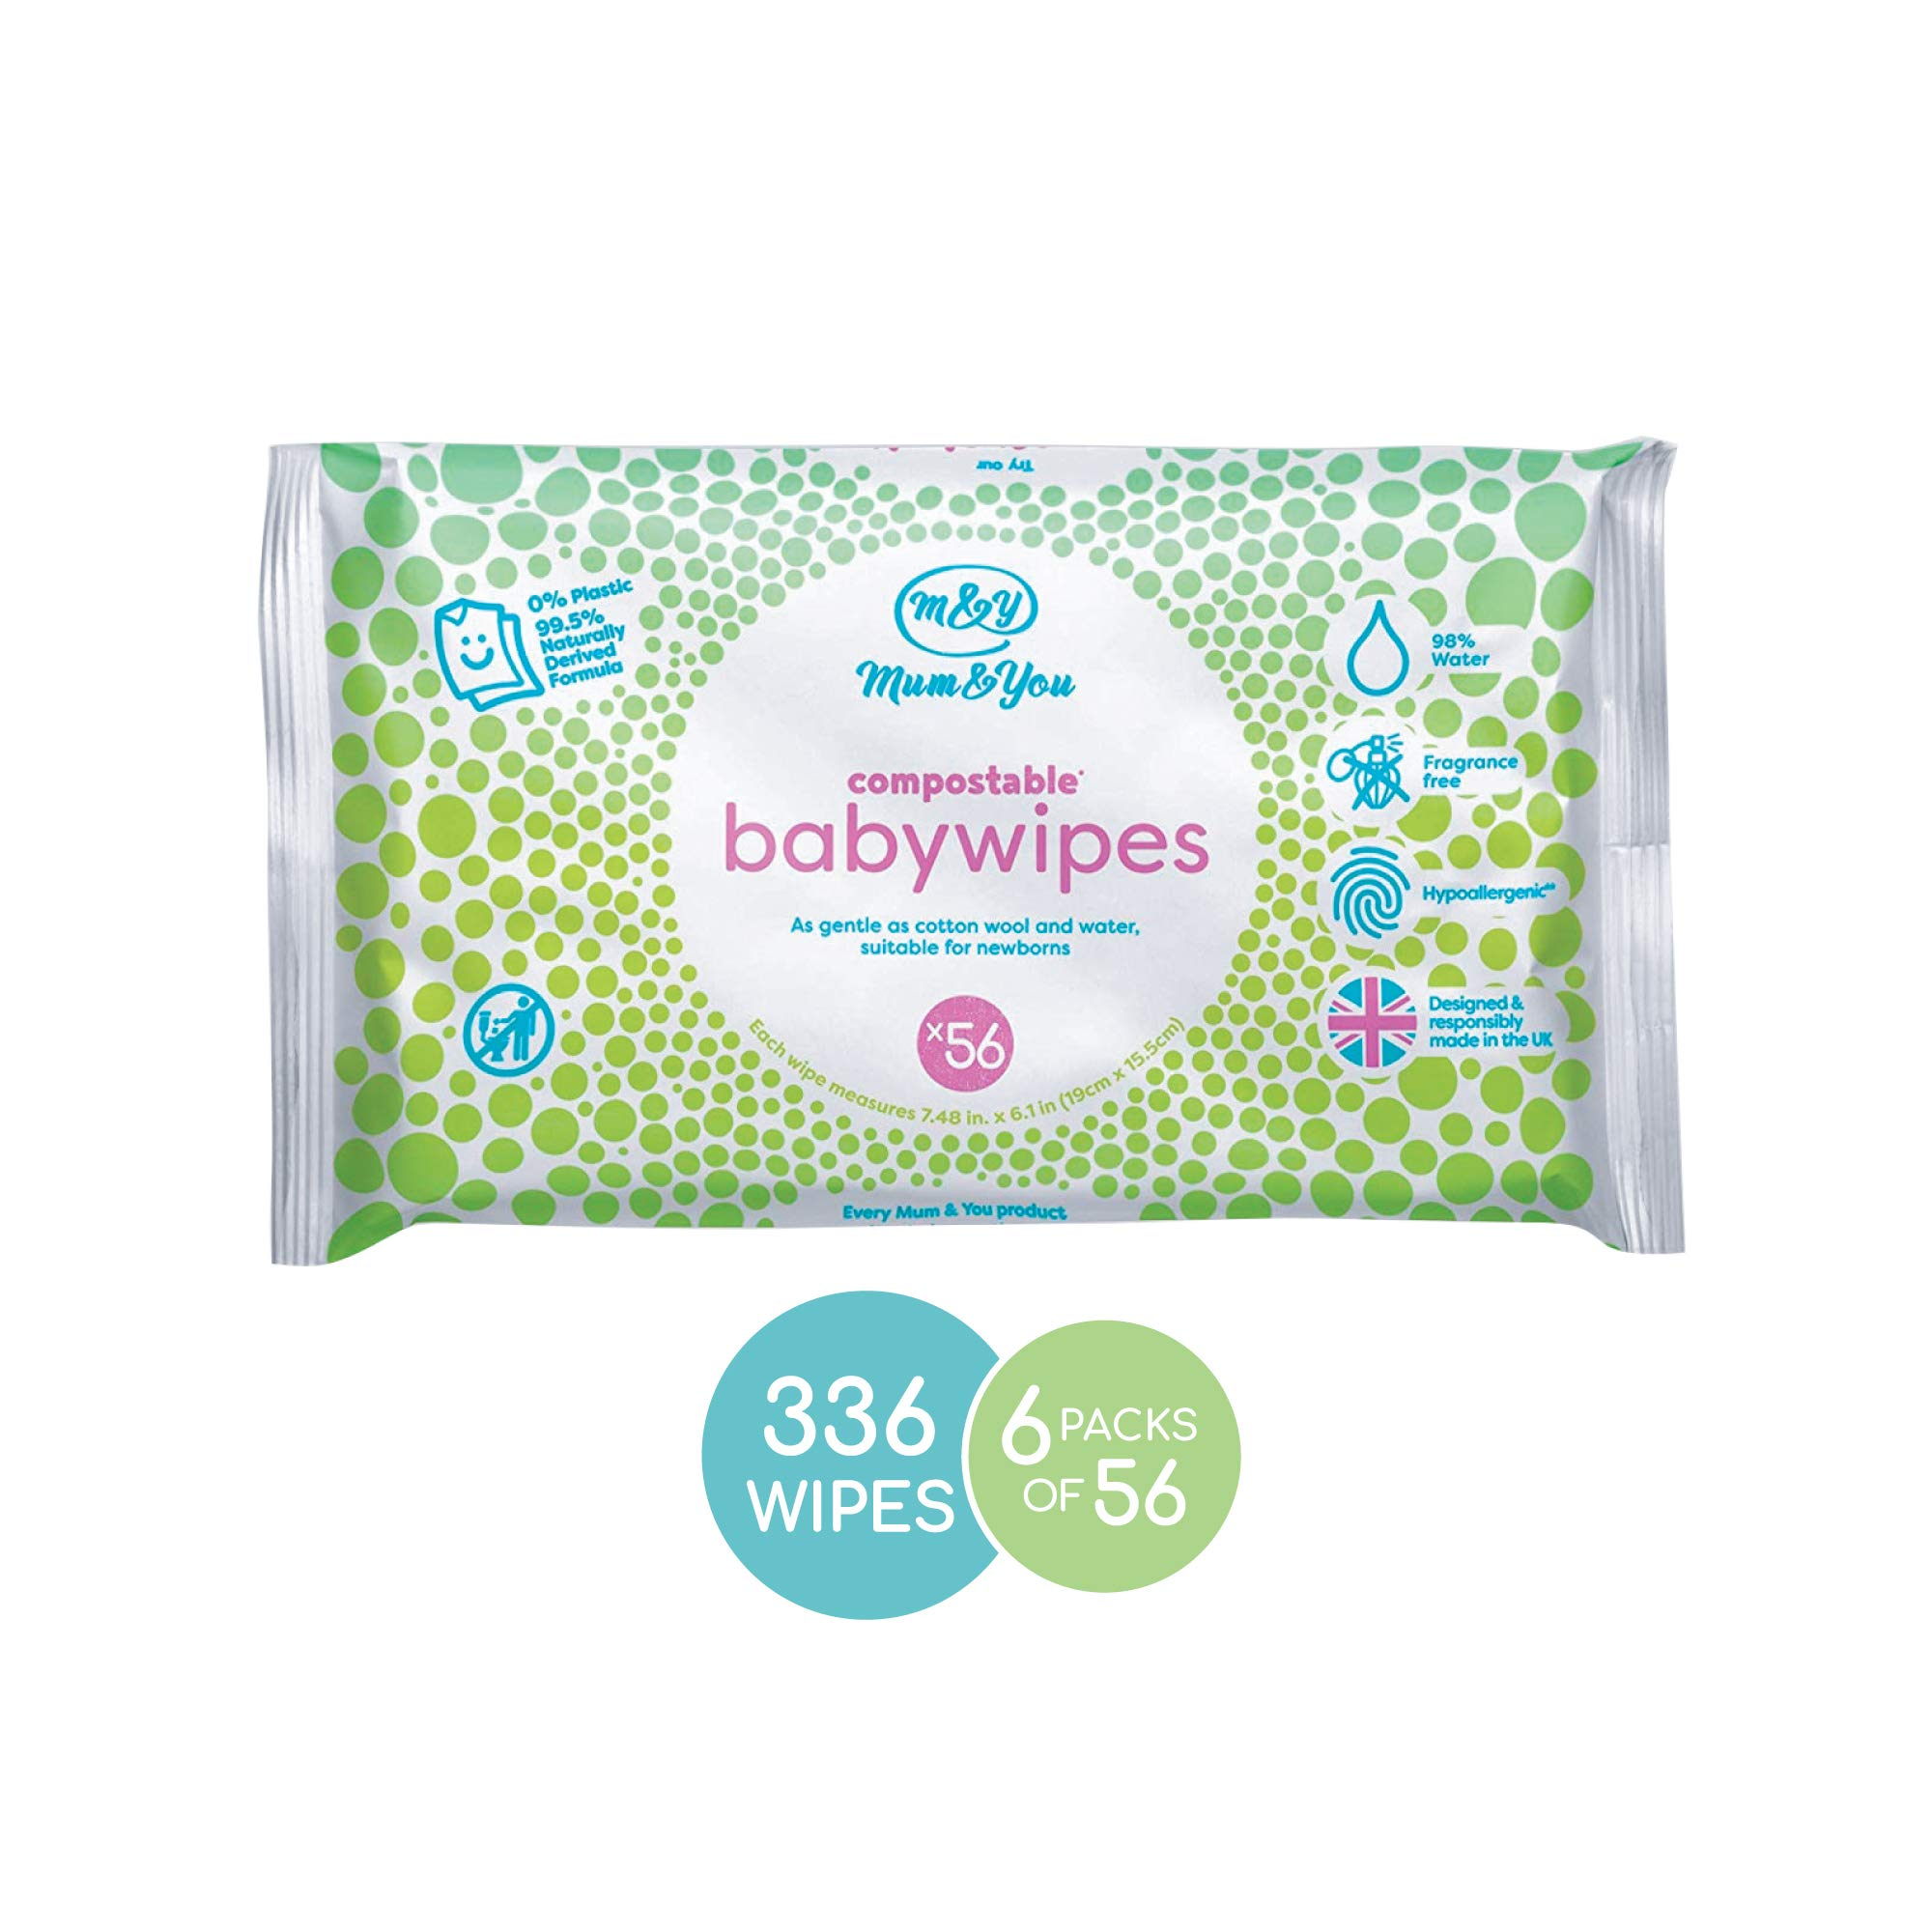 Mum & You Biodegradable and Compostable Plastic Free Baby Wet Wipes 336 Count (6 Packs of 56) - 98% Water, 0% Plastic, Hypoallergenic & Dermatologically Tested by Mum&You